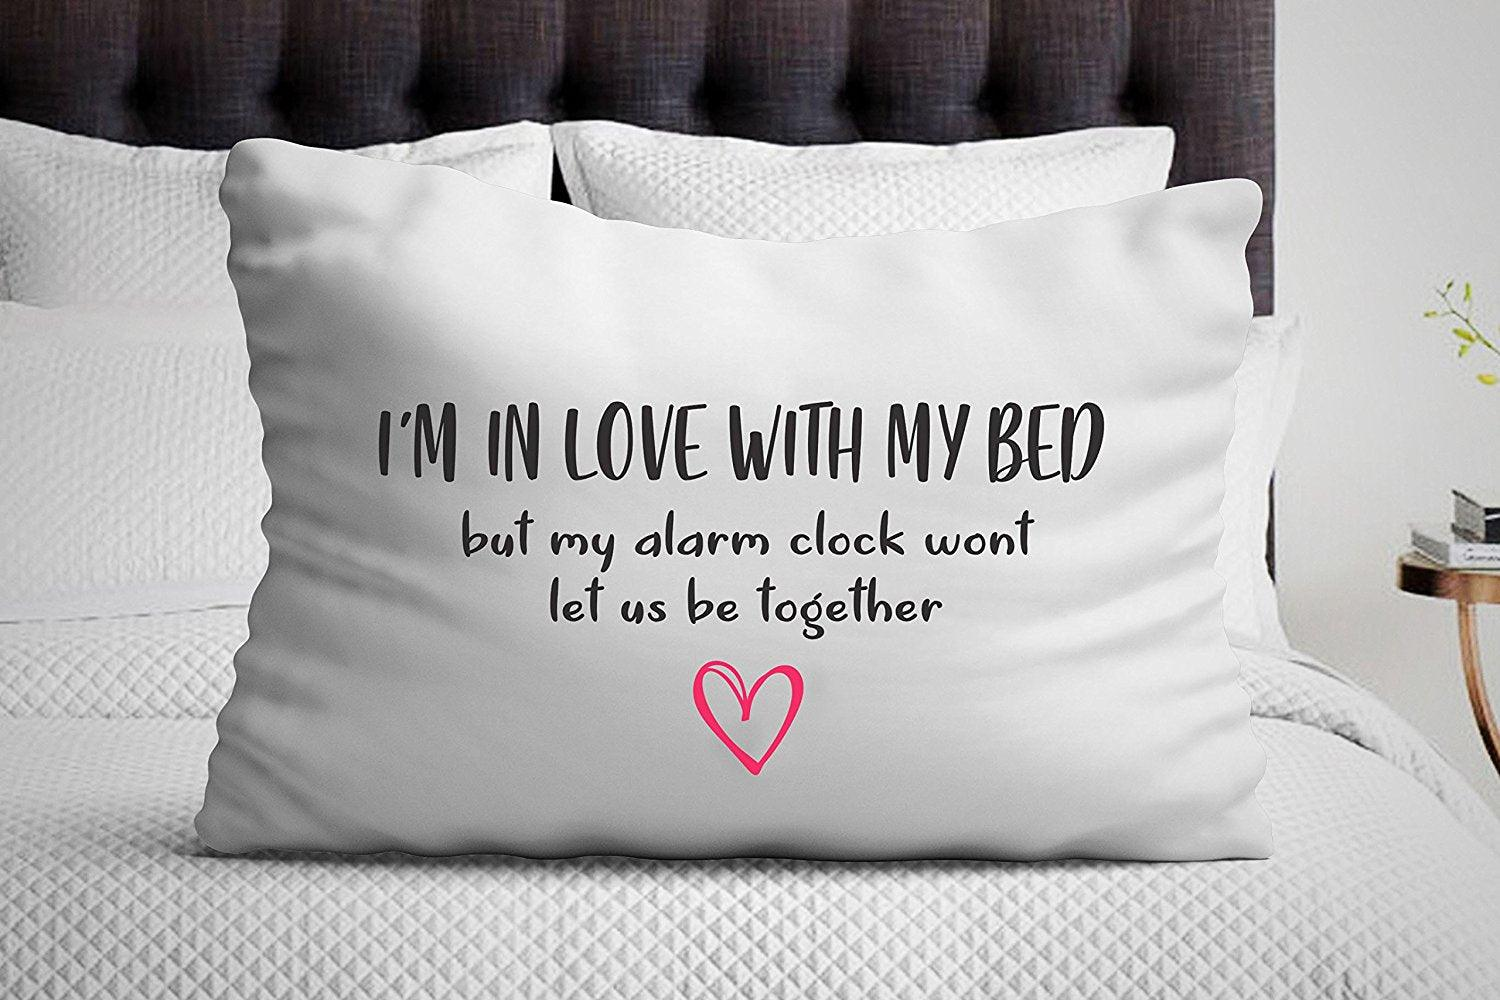 Love you gifts - I'm In Love with My Bed but My Alarm Clock Wont Let Us Be Together pillowcase - Single Pillowcase - BOSTON CREATIVE COMPANY